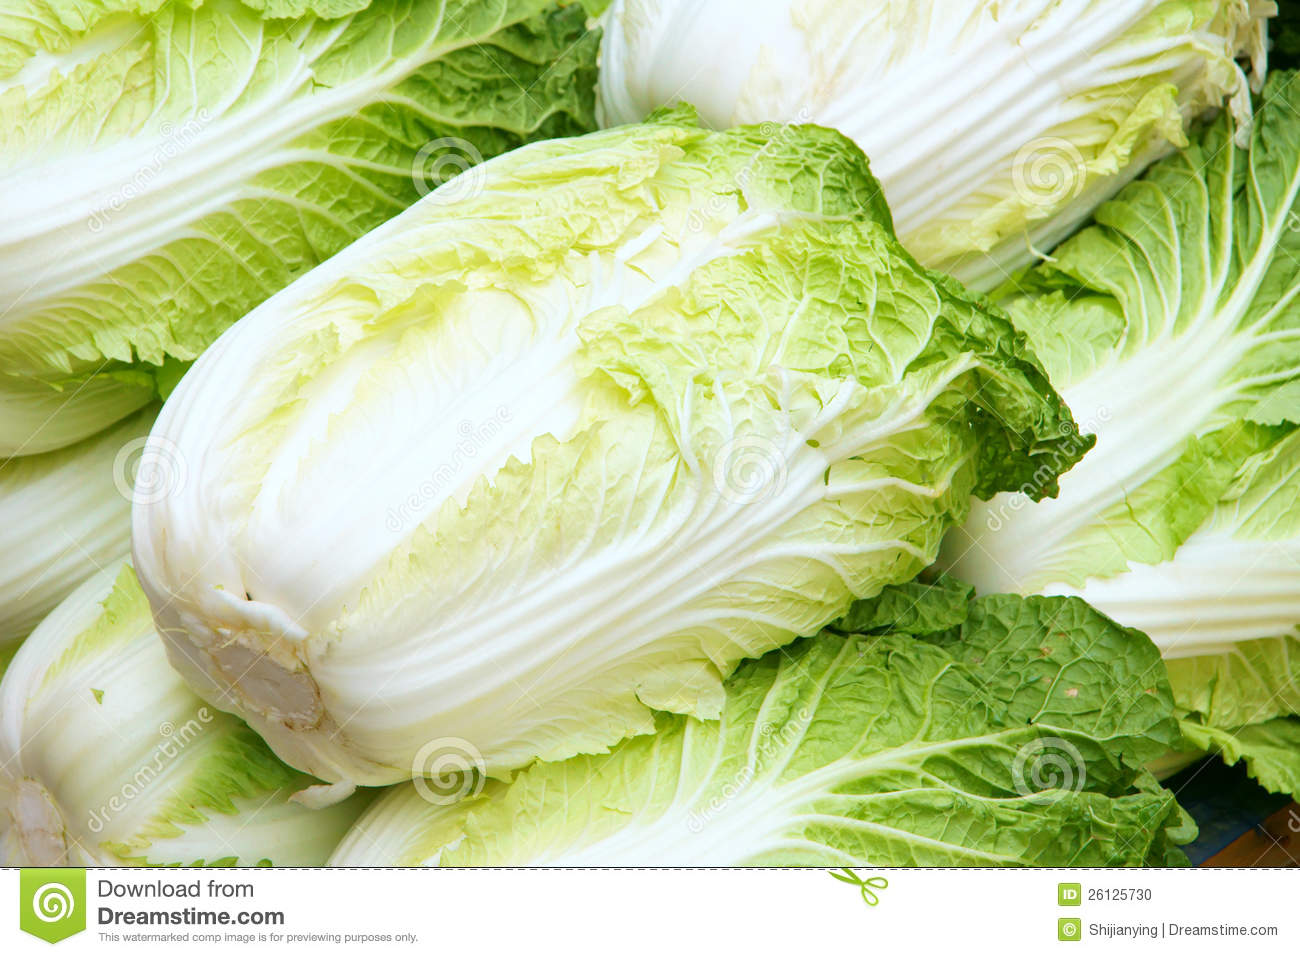 Chinese Cabbage Stock Image | CartoonDealer.com #578185